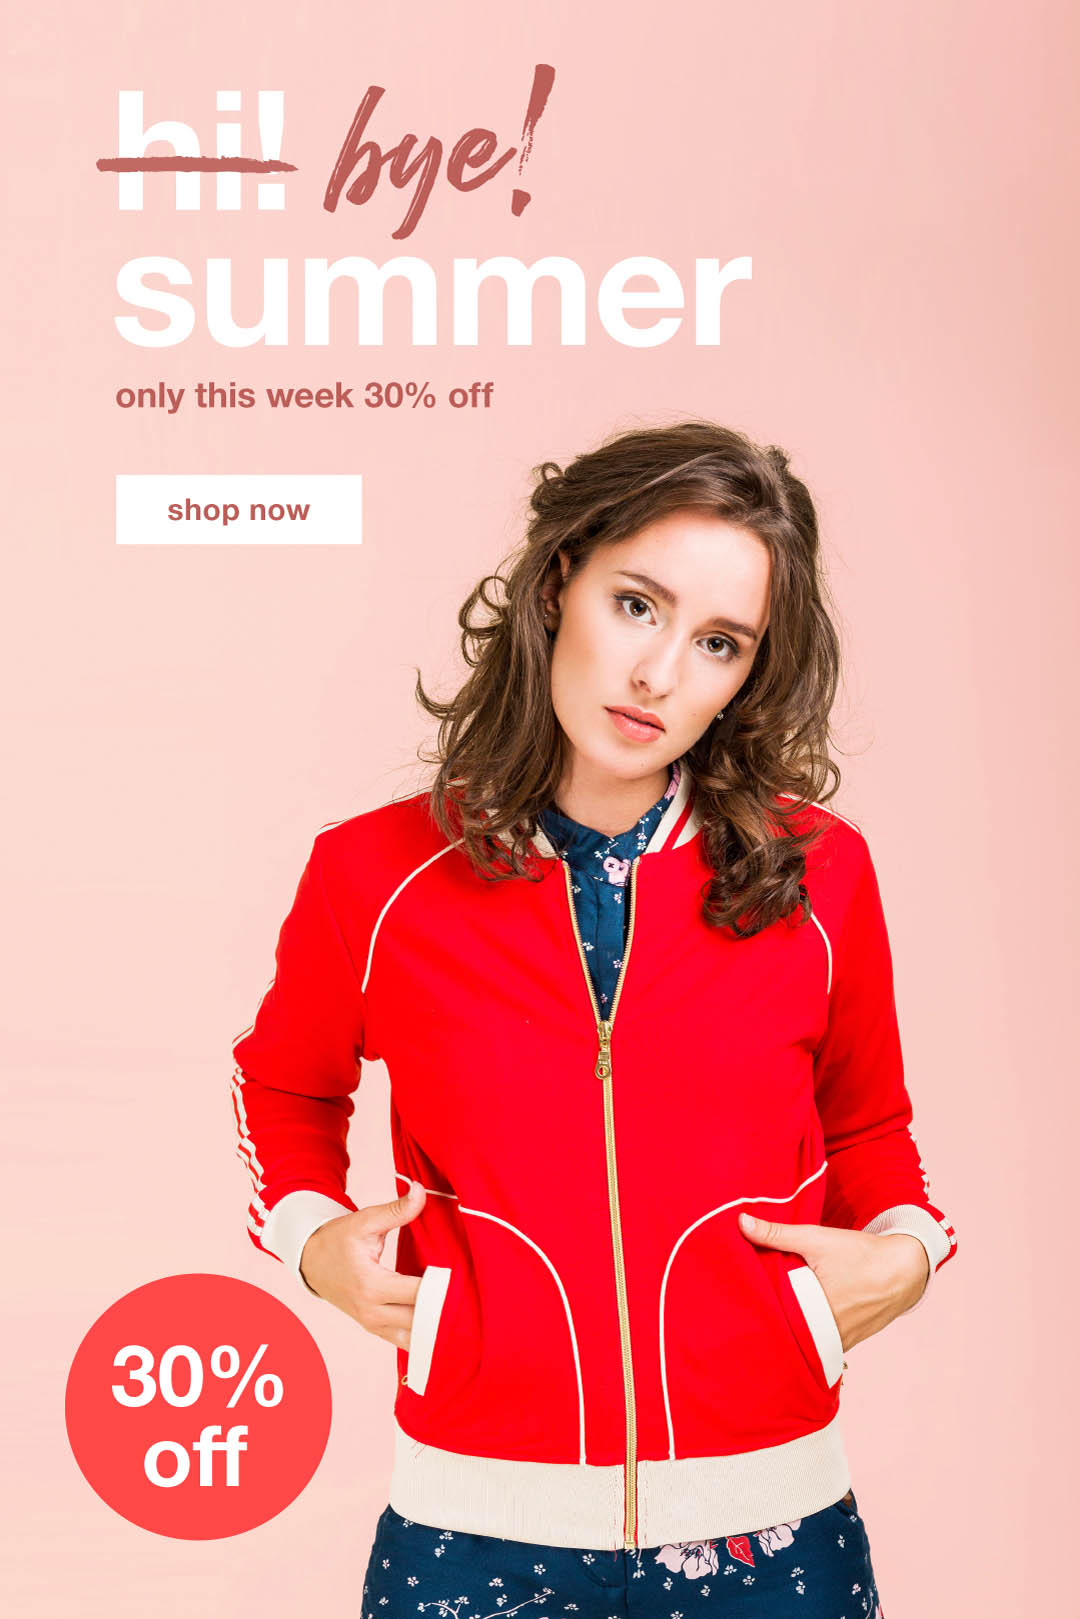 30% off - hi! summer